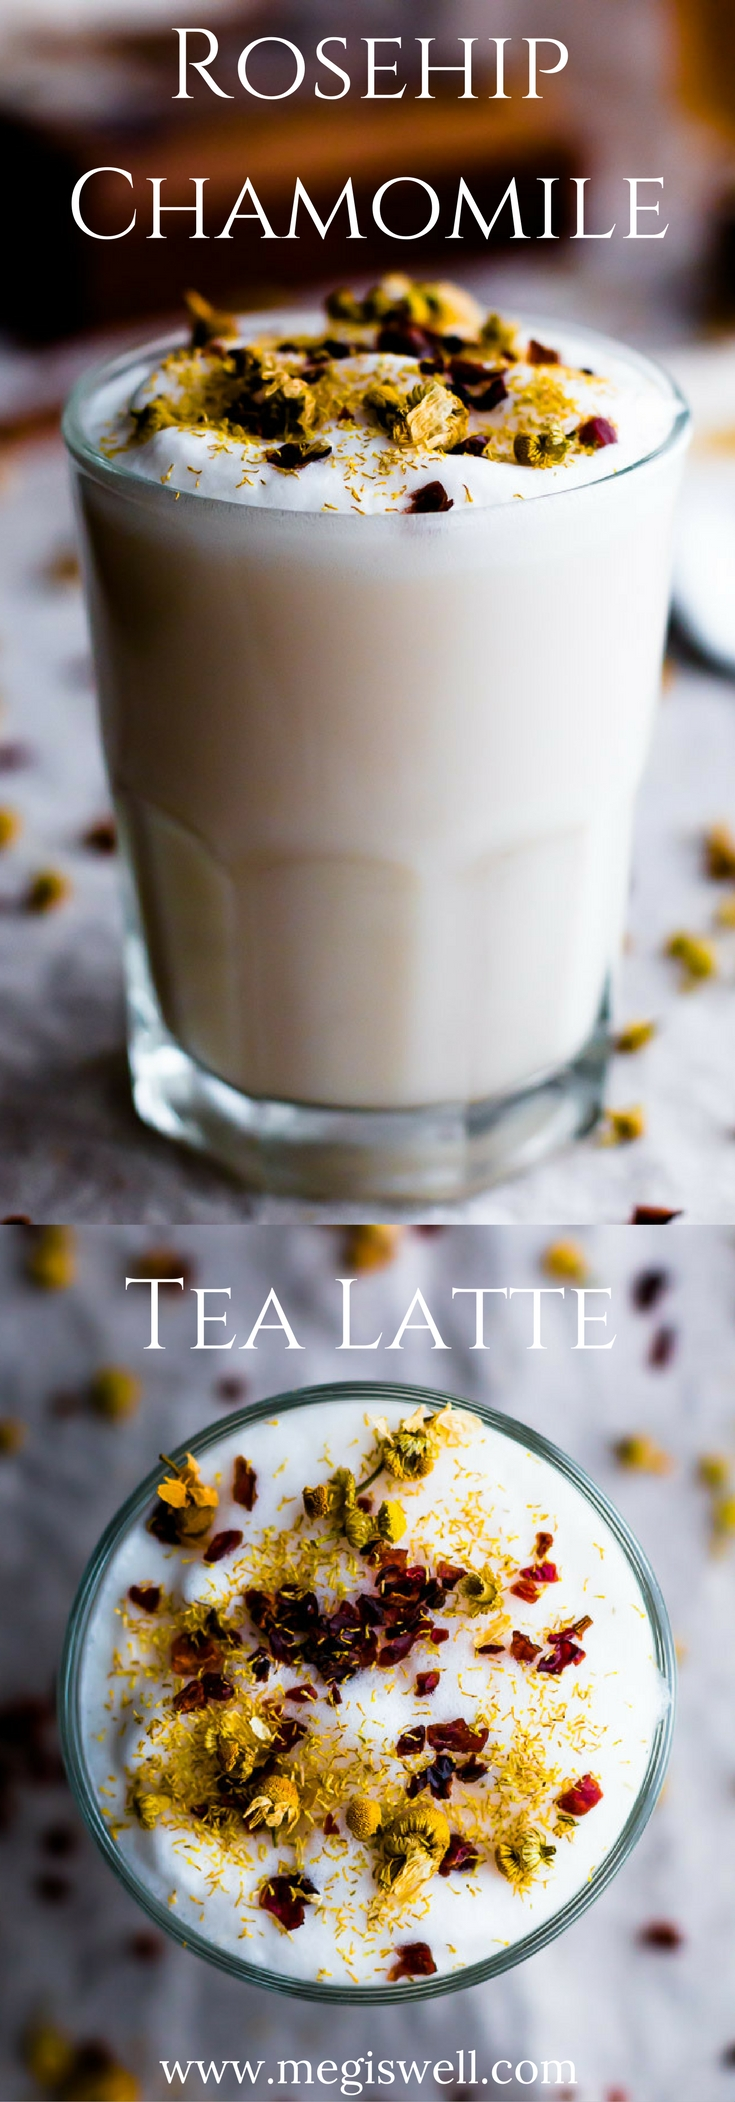 This Rosehip Chamomile Tea Latte is a floral and herbal twist on the London Fog. It's meant to soothe and calm the body and mind, making it perfect for dreary weather snuggle time! | www.megiswell.com